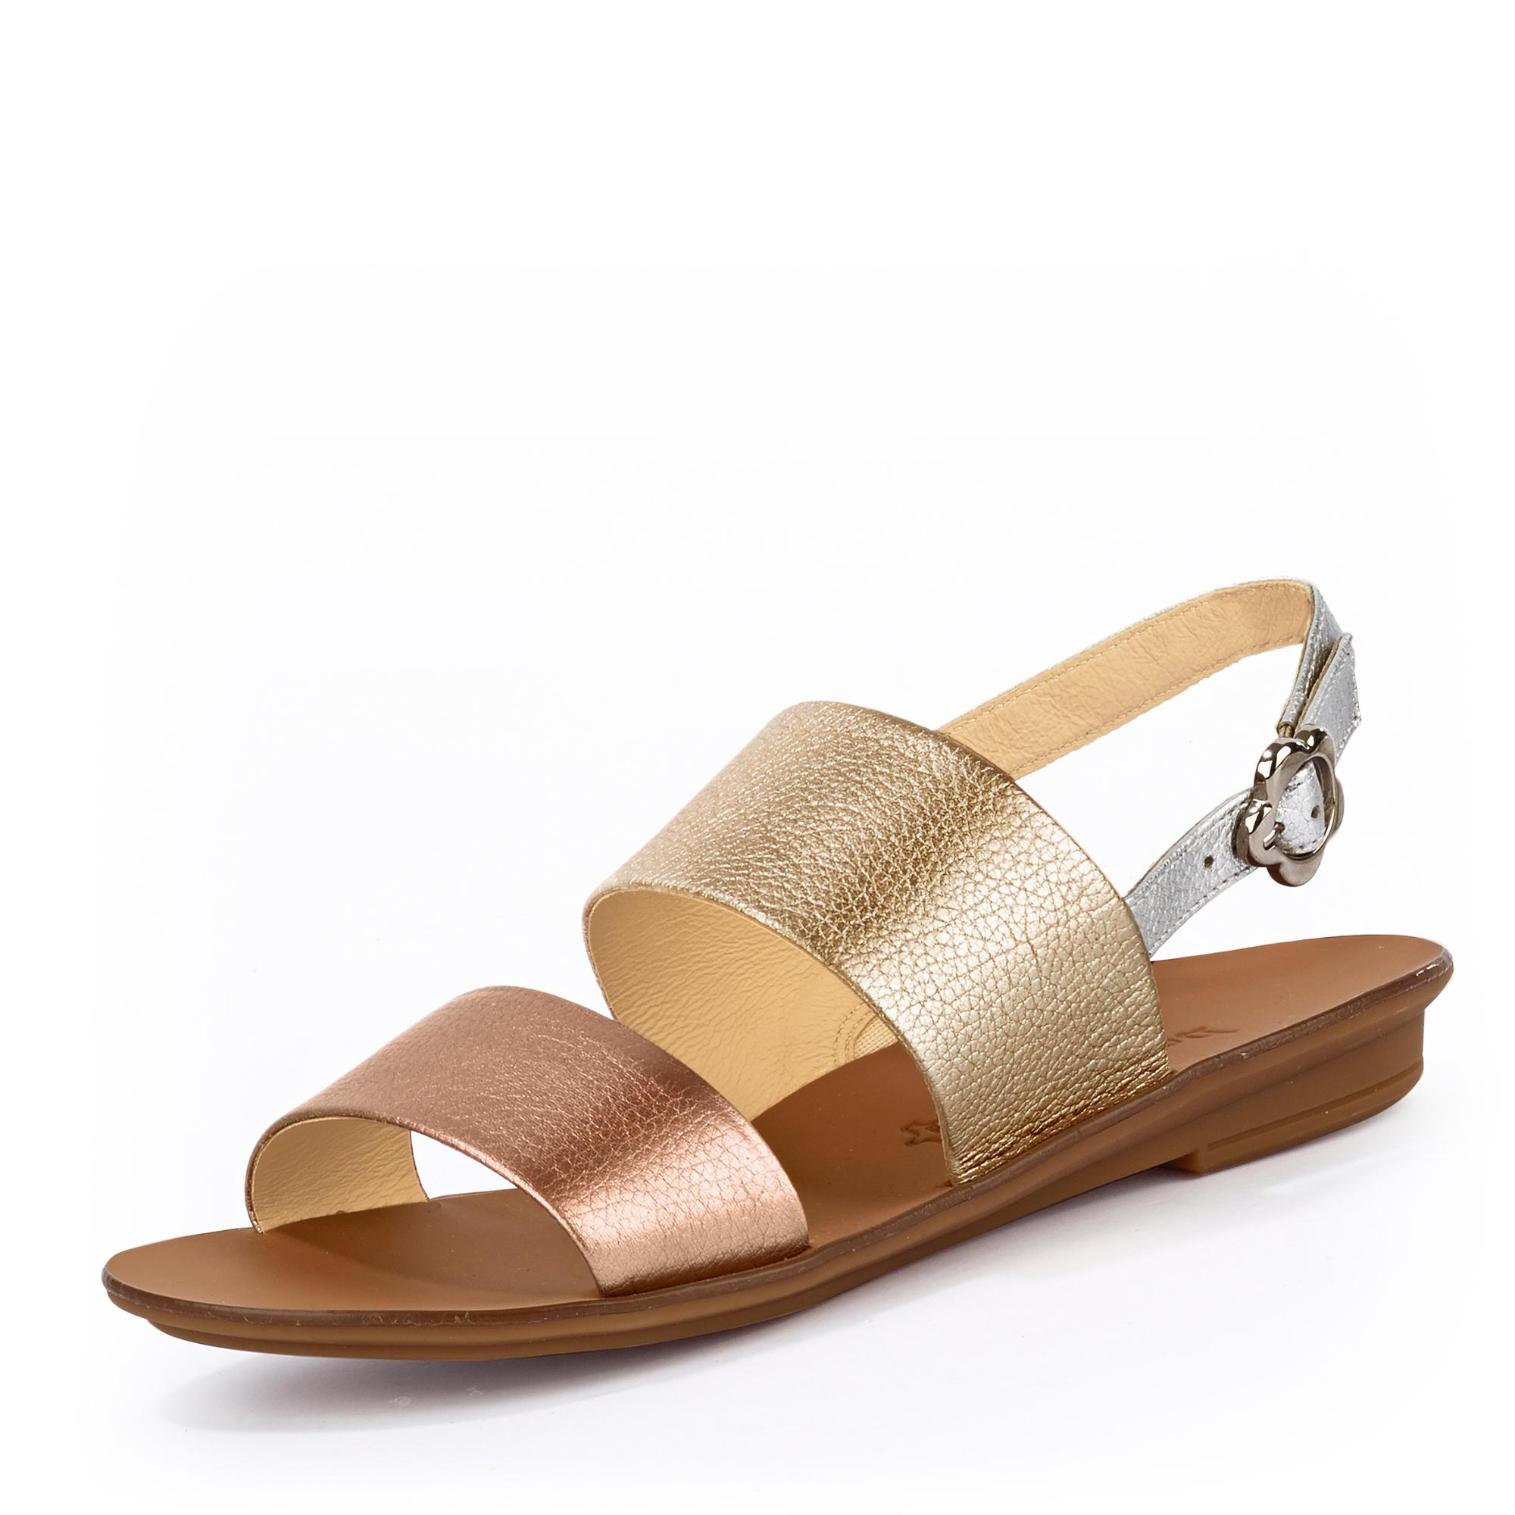 separation shoes 321ce f95a9 Paul Green Sandale in Farbe gold/bronze um 44% reduziert ...